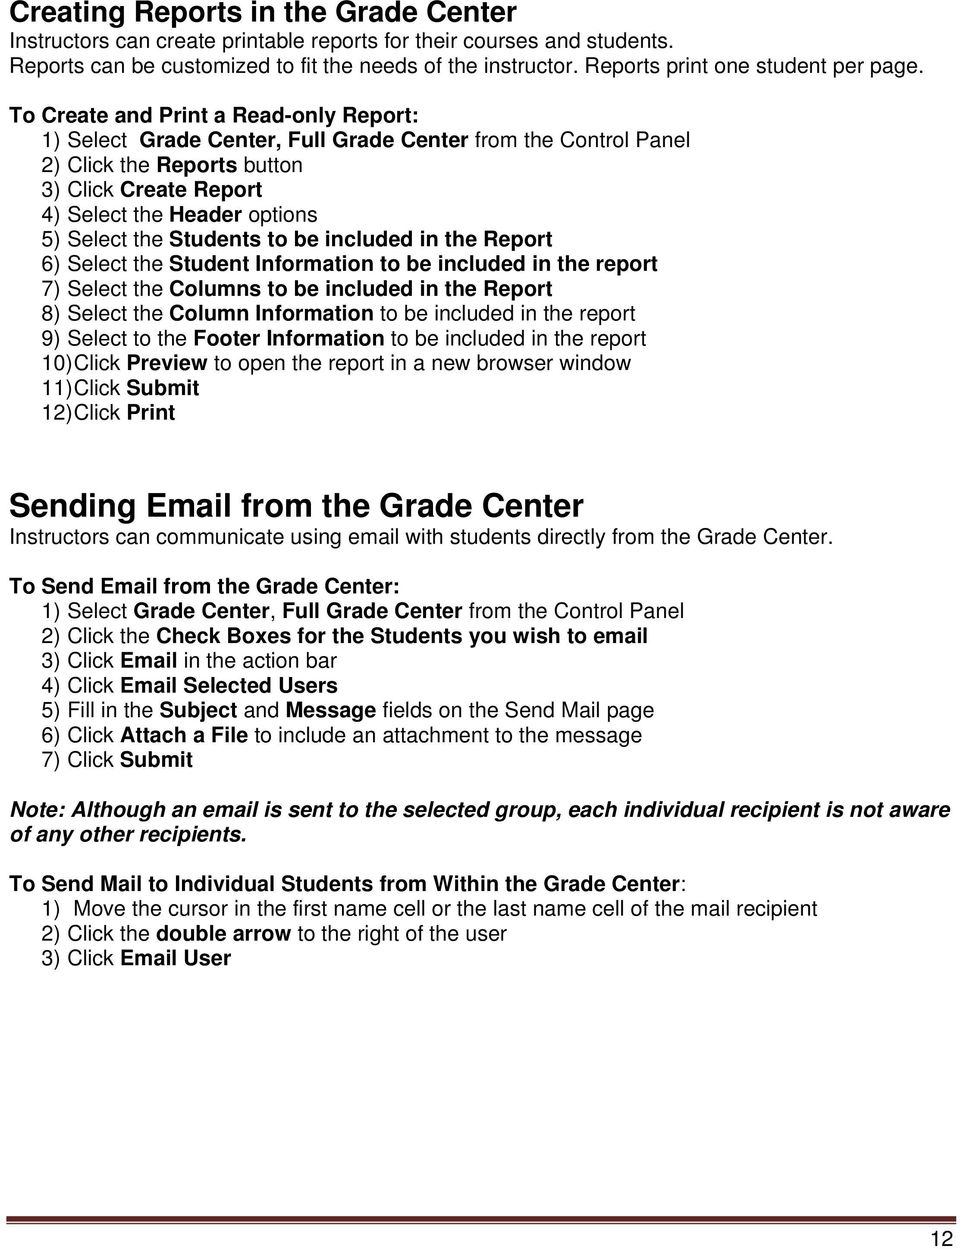 To Create and Print a Read-only Report: 1) Select Grade Center, Full Grade Center from the Control Panel 2) Click the Reports button 3) Click Create Report 4) Select the Header options 5) Select the